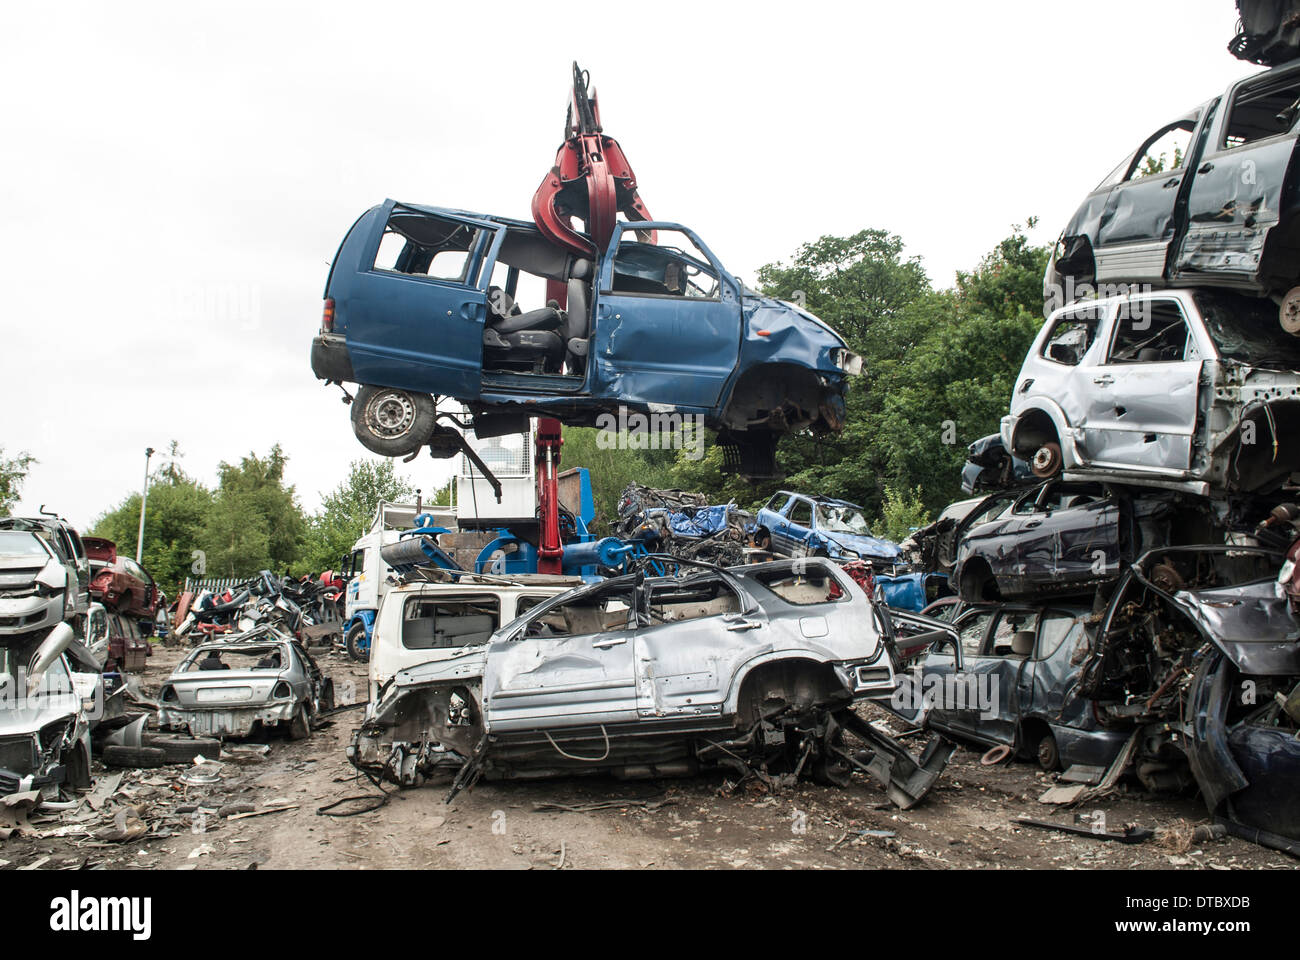 Scrap Prices For Cars Uk